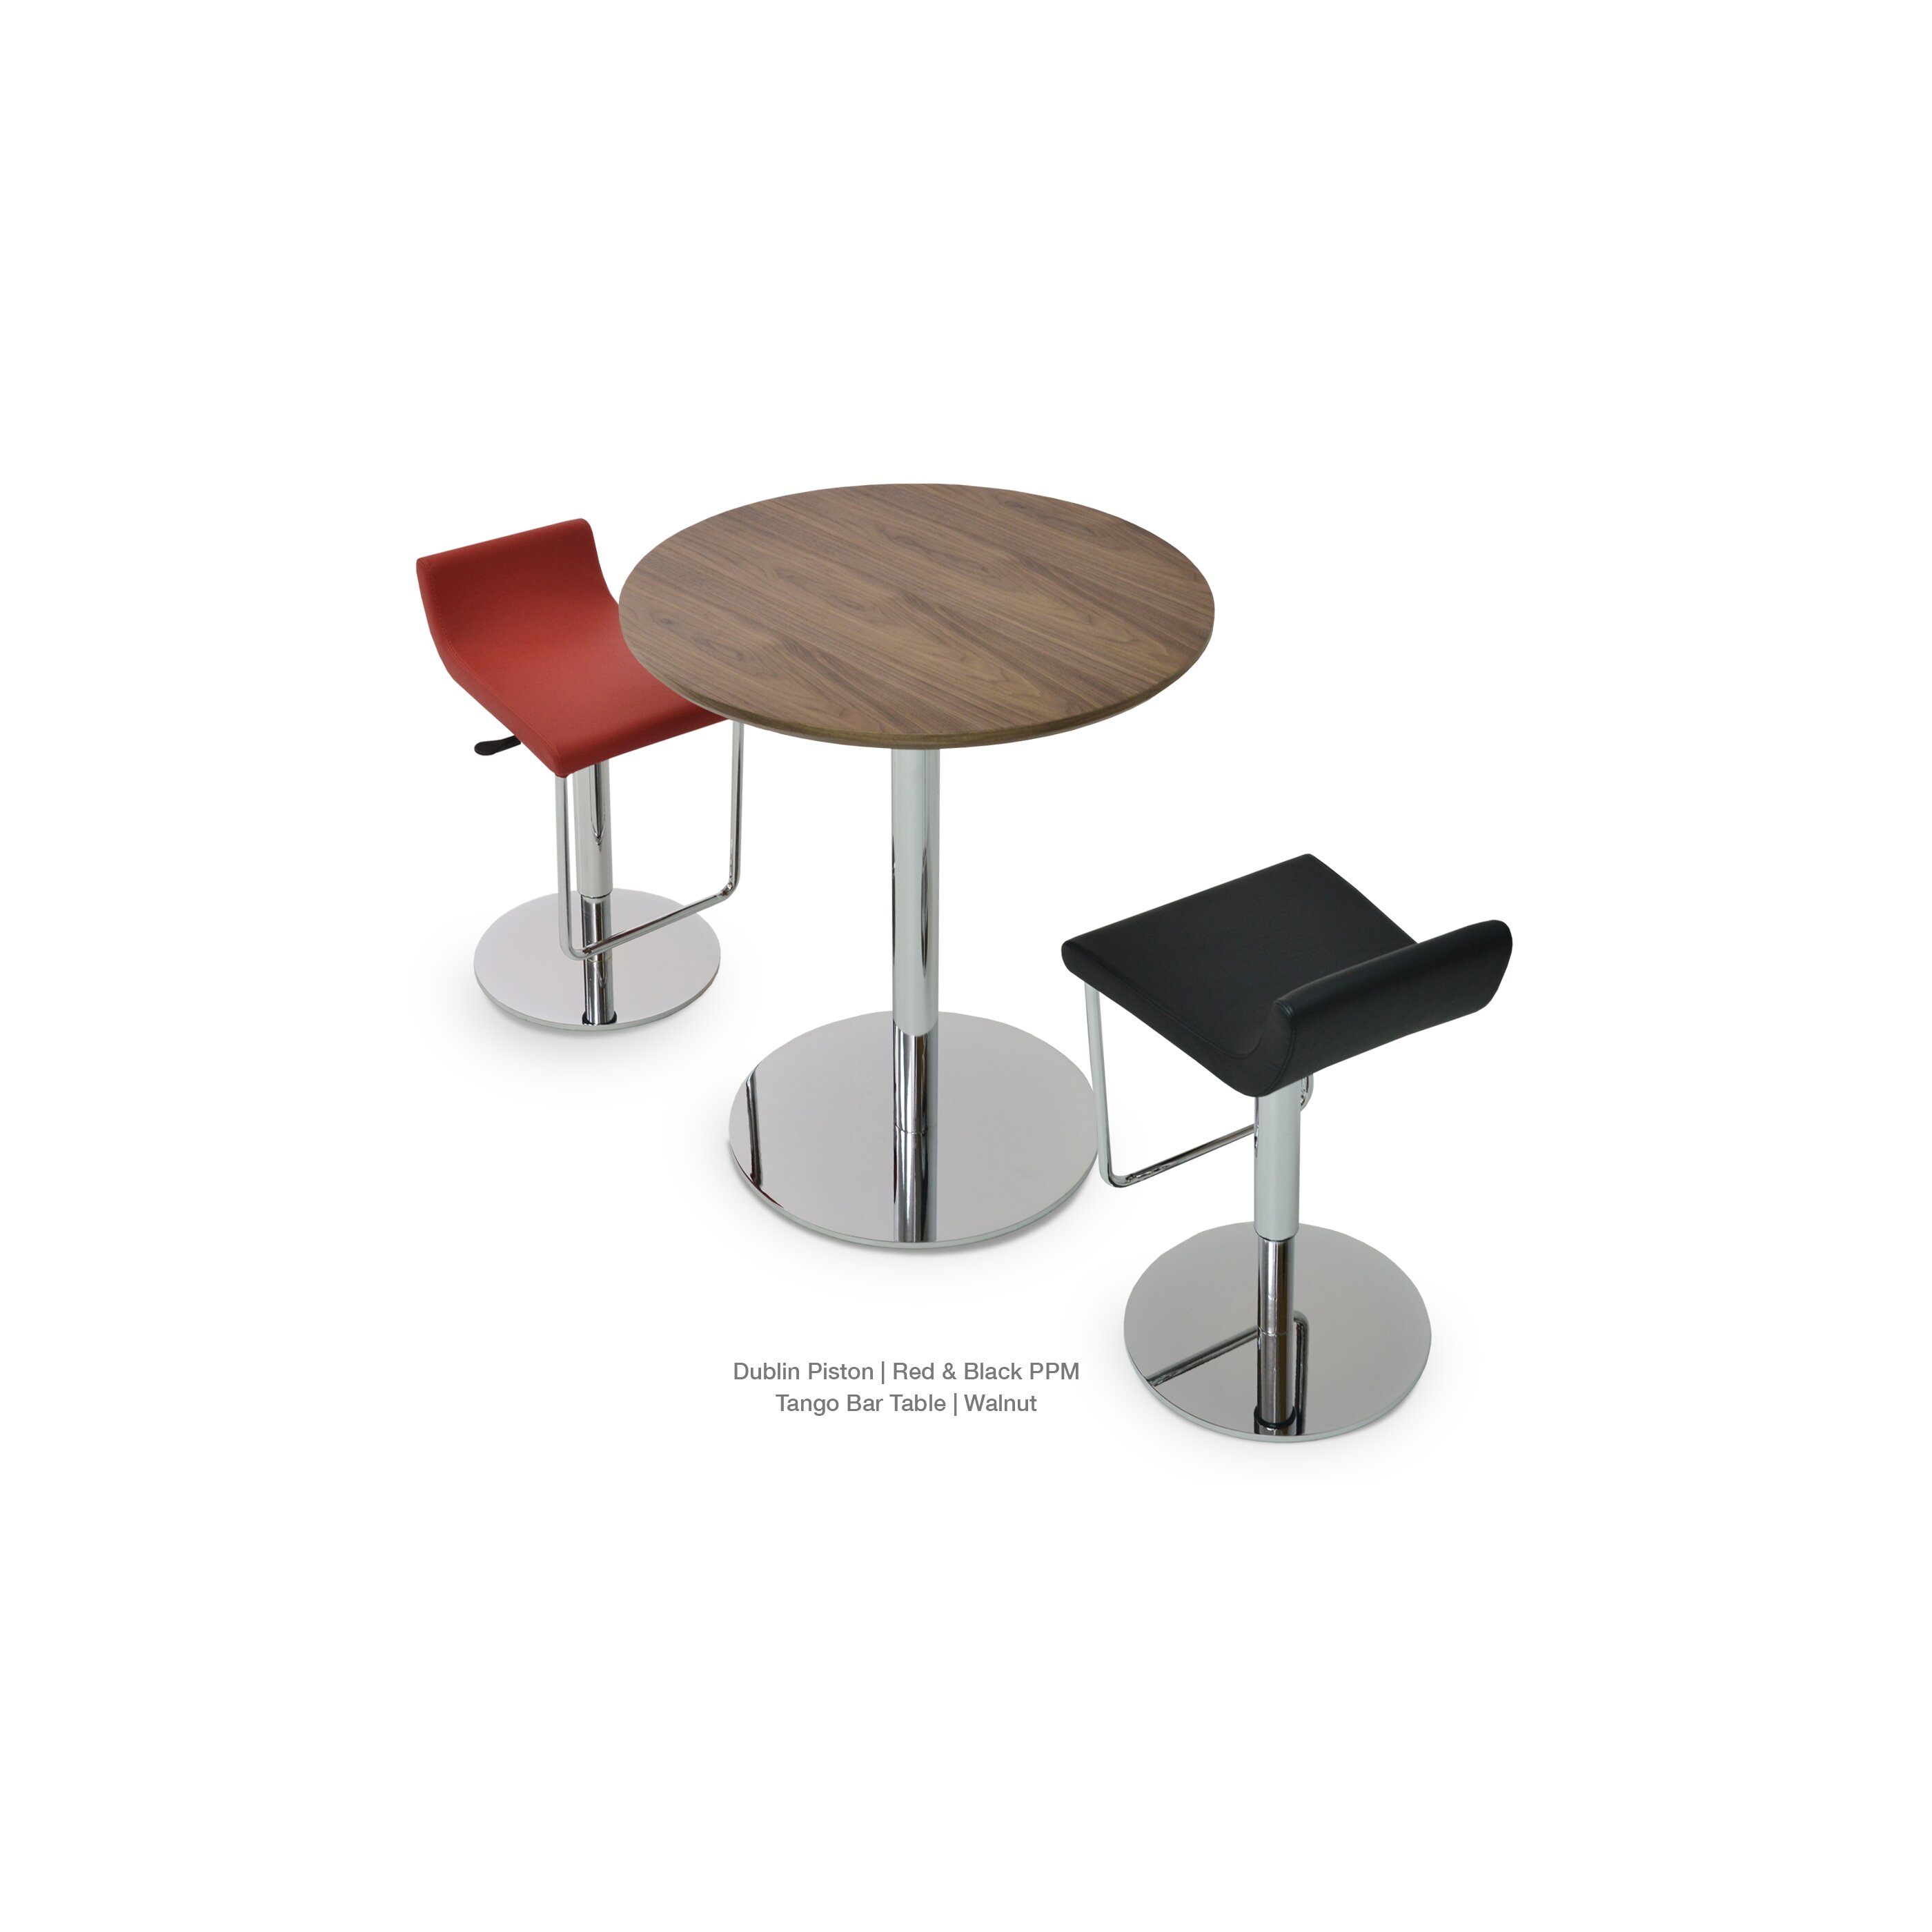 Sohoconcept Dublin Piston Adjustable Height Swivel Bar